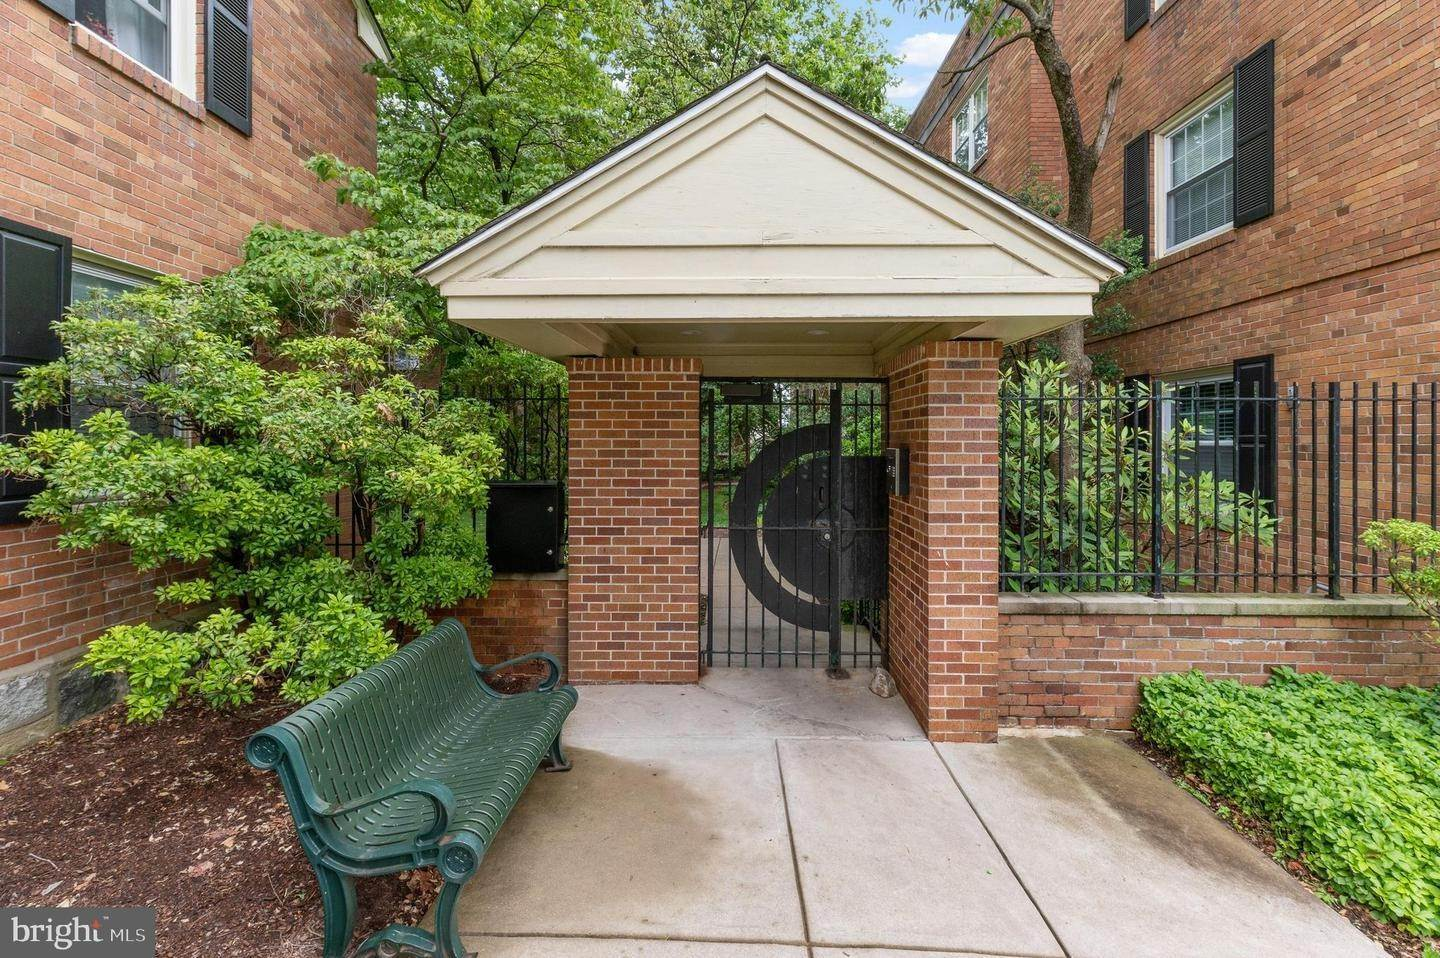 Condominiums for Sale at 42 CONSHOHOCKEN STATE RD #5F Bala Cynwyd, Pennsylvania 19004 United States